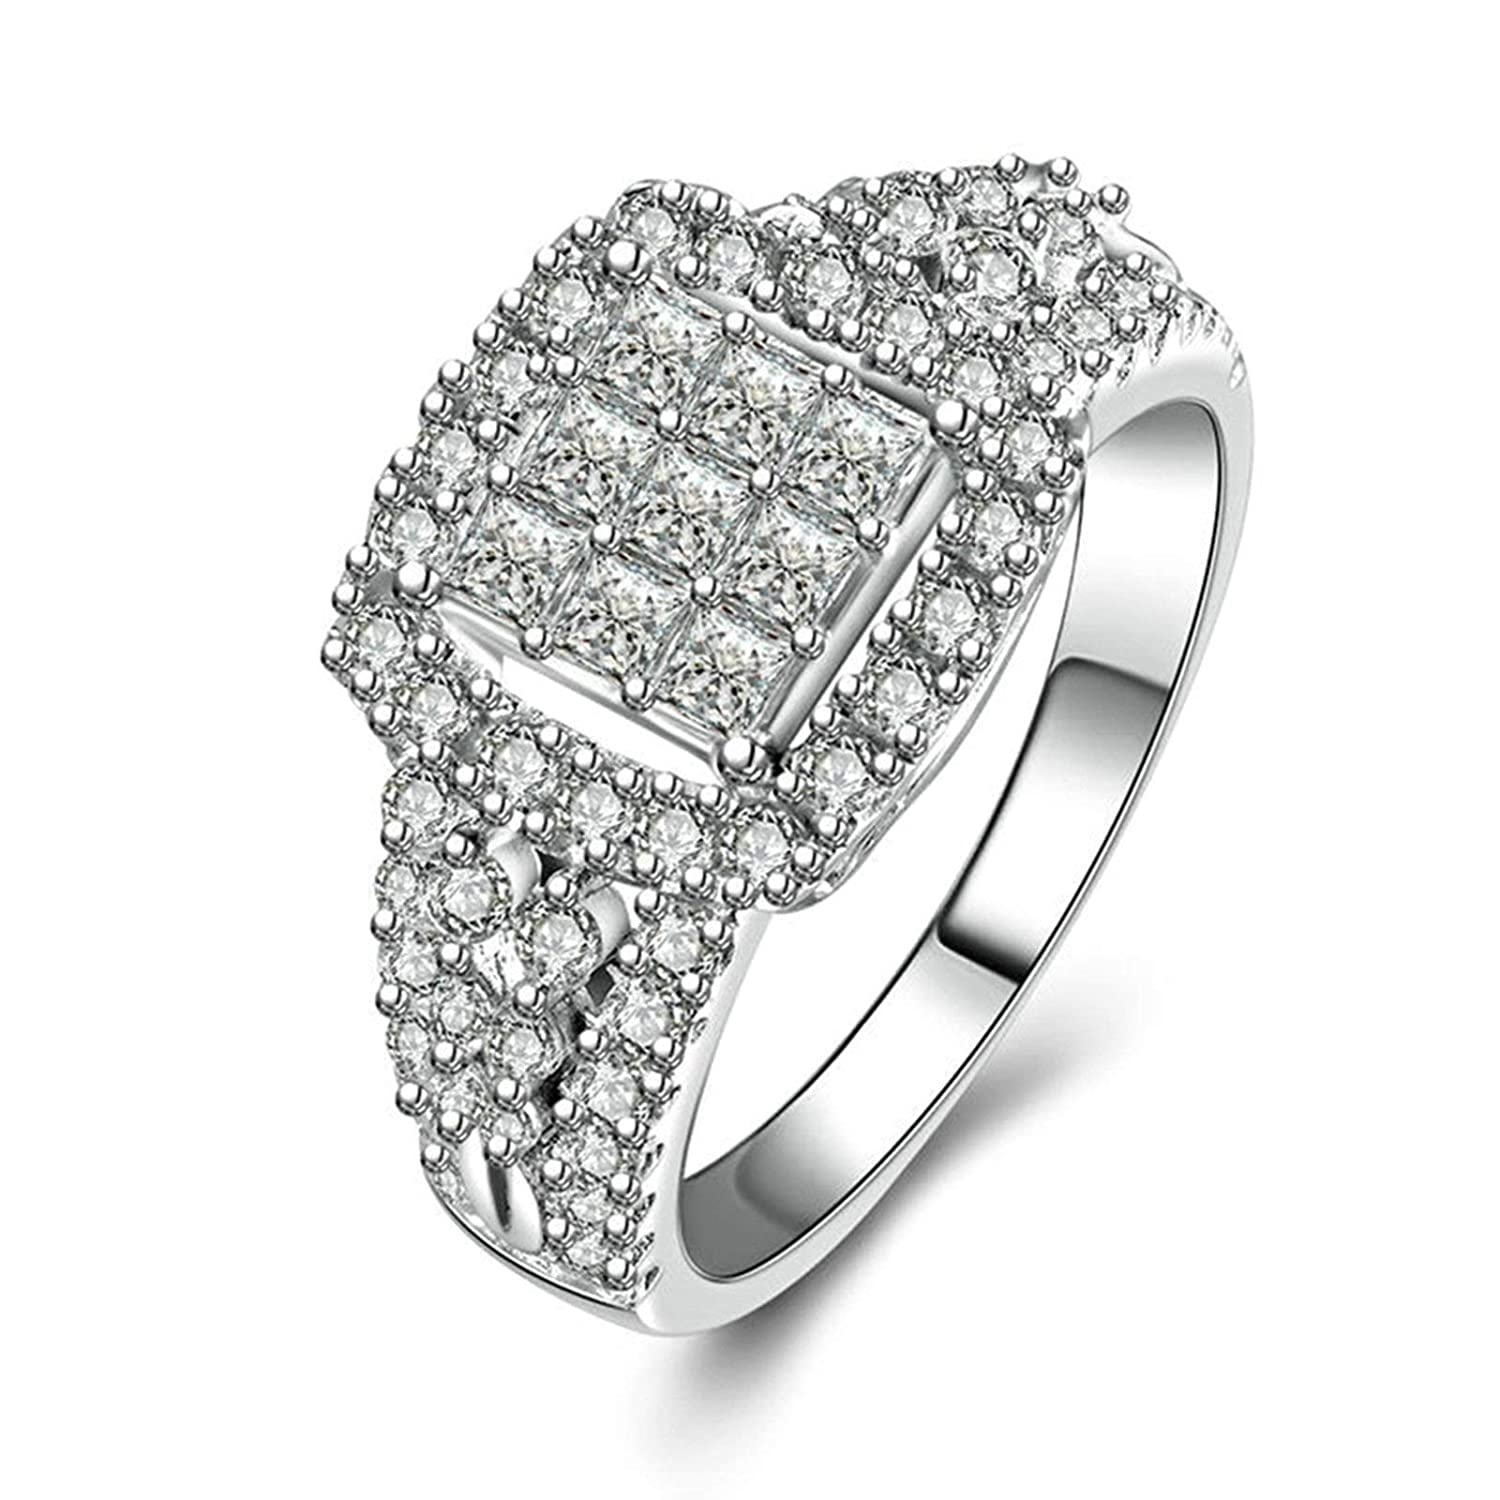 2850707dc741e Amazon.com: Aooaz Ring for Party Silver Material Ring Square ...